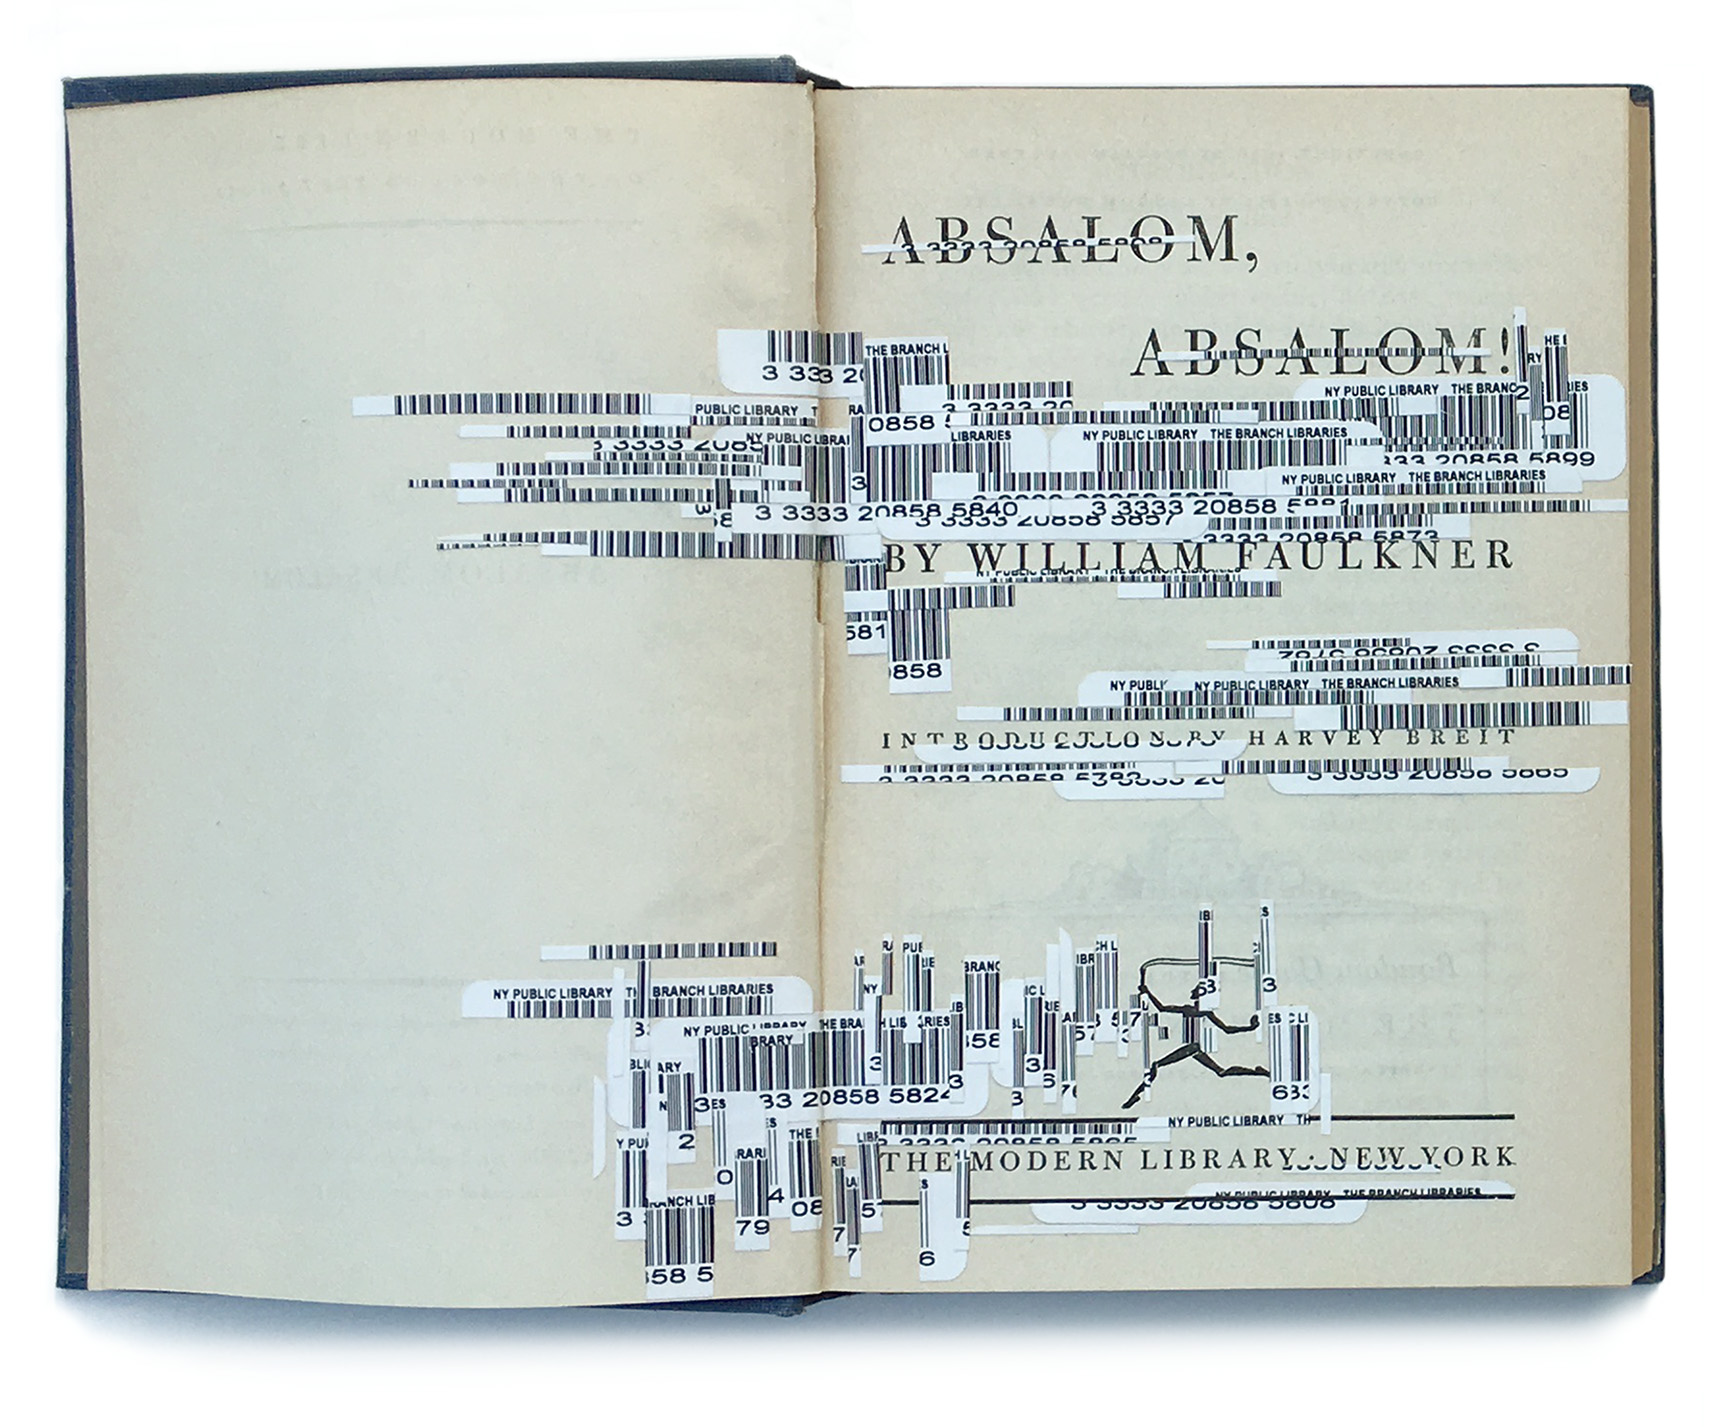 """""""Faulkner's Interferences 1, Absalom, Absalom"""", 2012. Collage on vintage book 1951 edition, H7.25"""" x W9.75"""". Collection of the Muzeul Literaturii Romane Bucharest, Romania."""